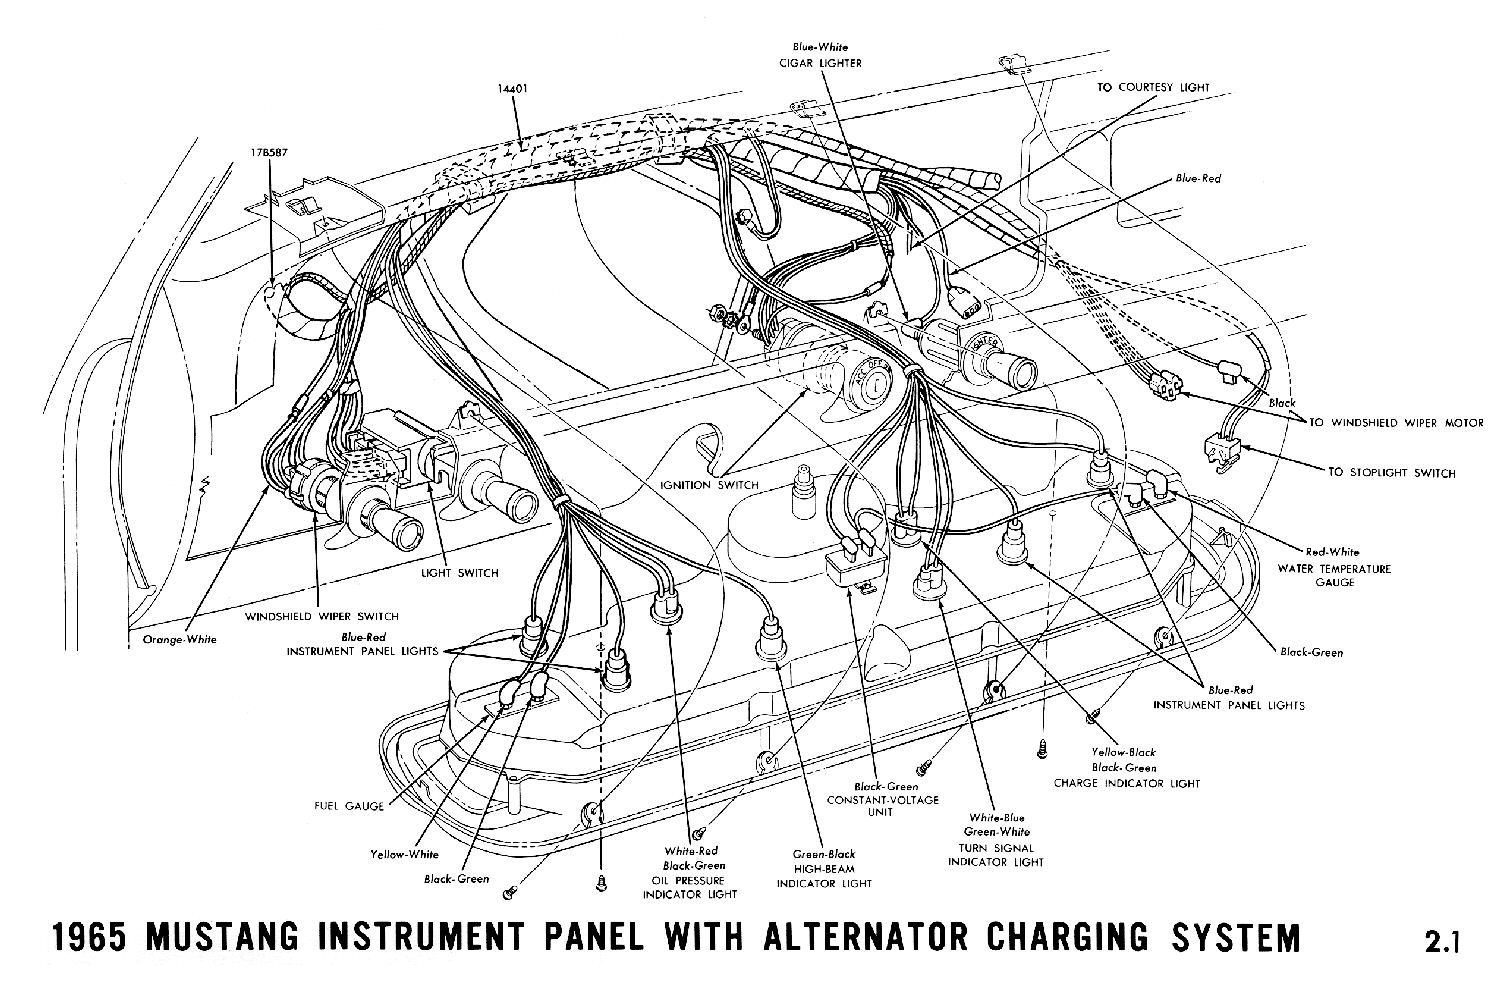 2002 Mustang Gt Engine Diagram Ford GT Engine Diagram